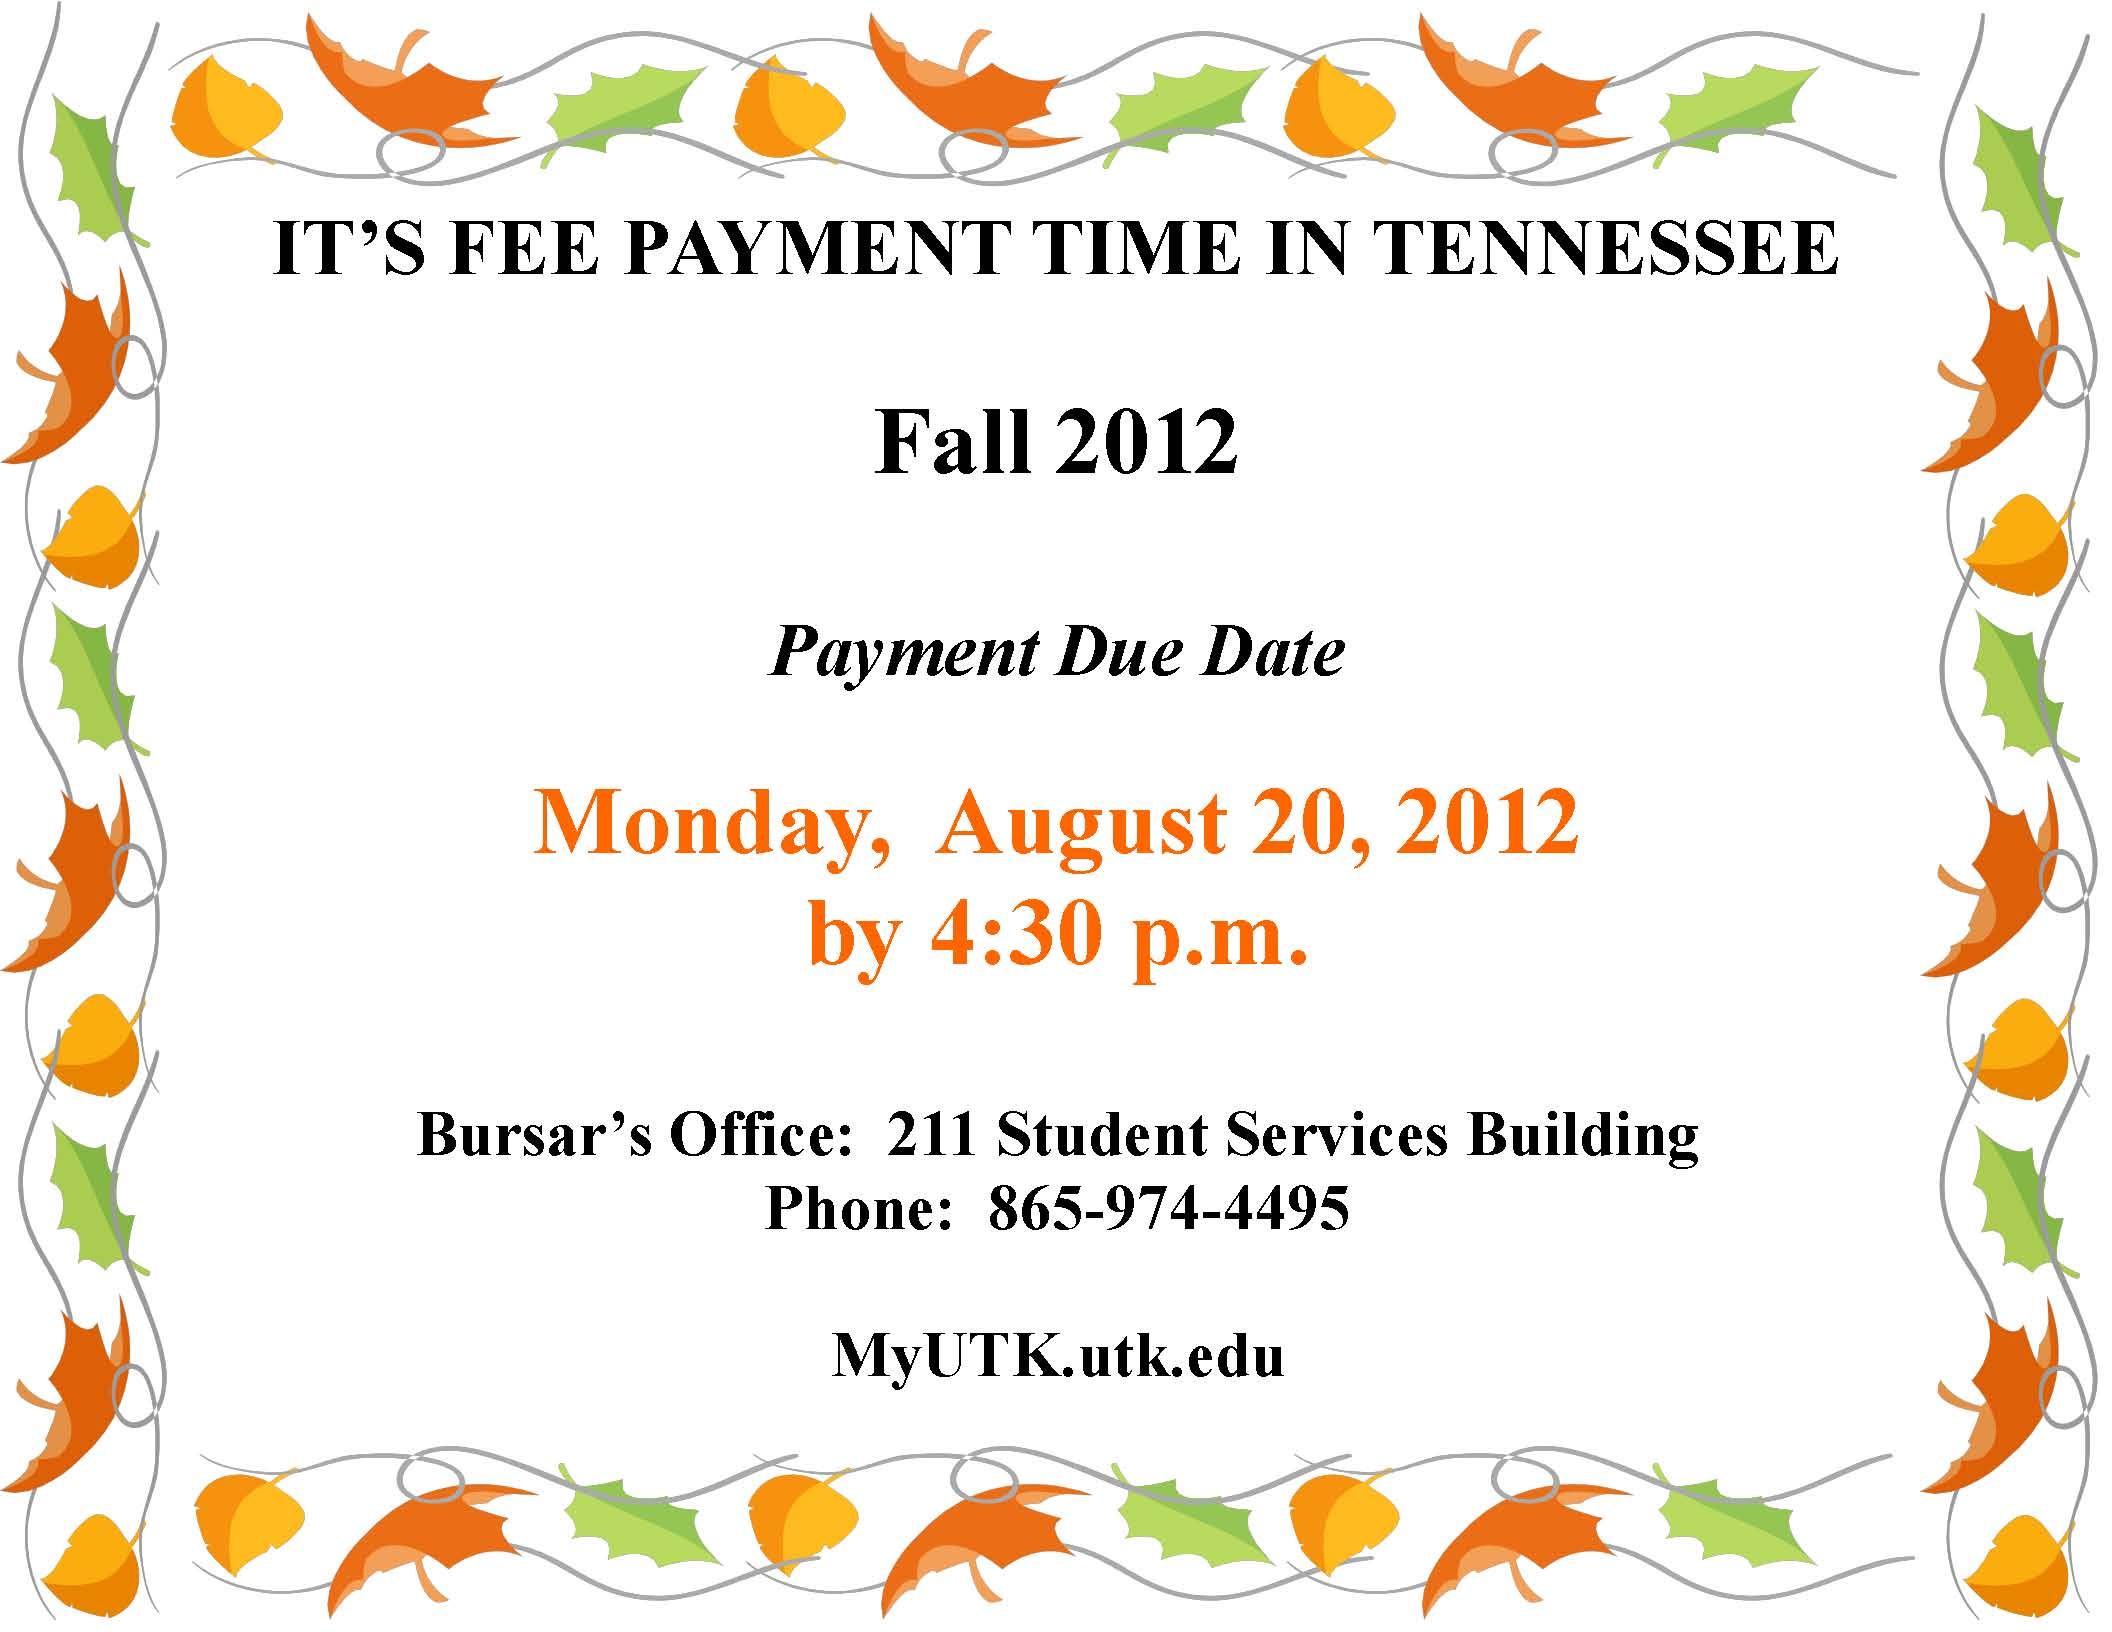 Reminder About Fee Payment Due Date